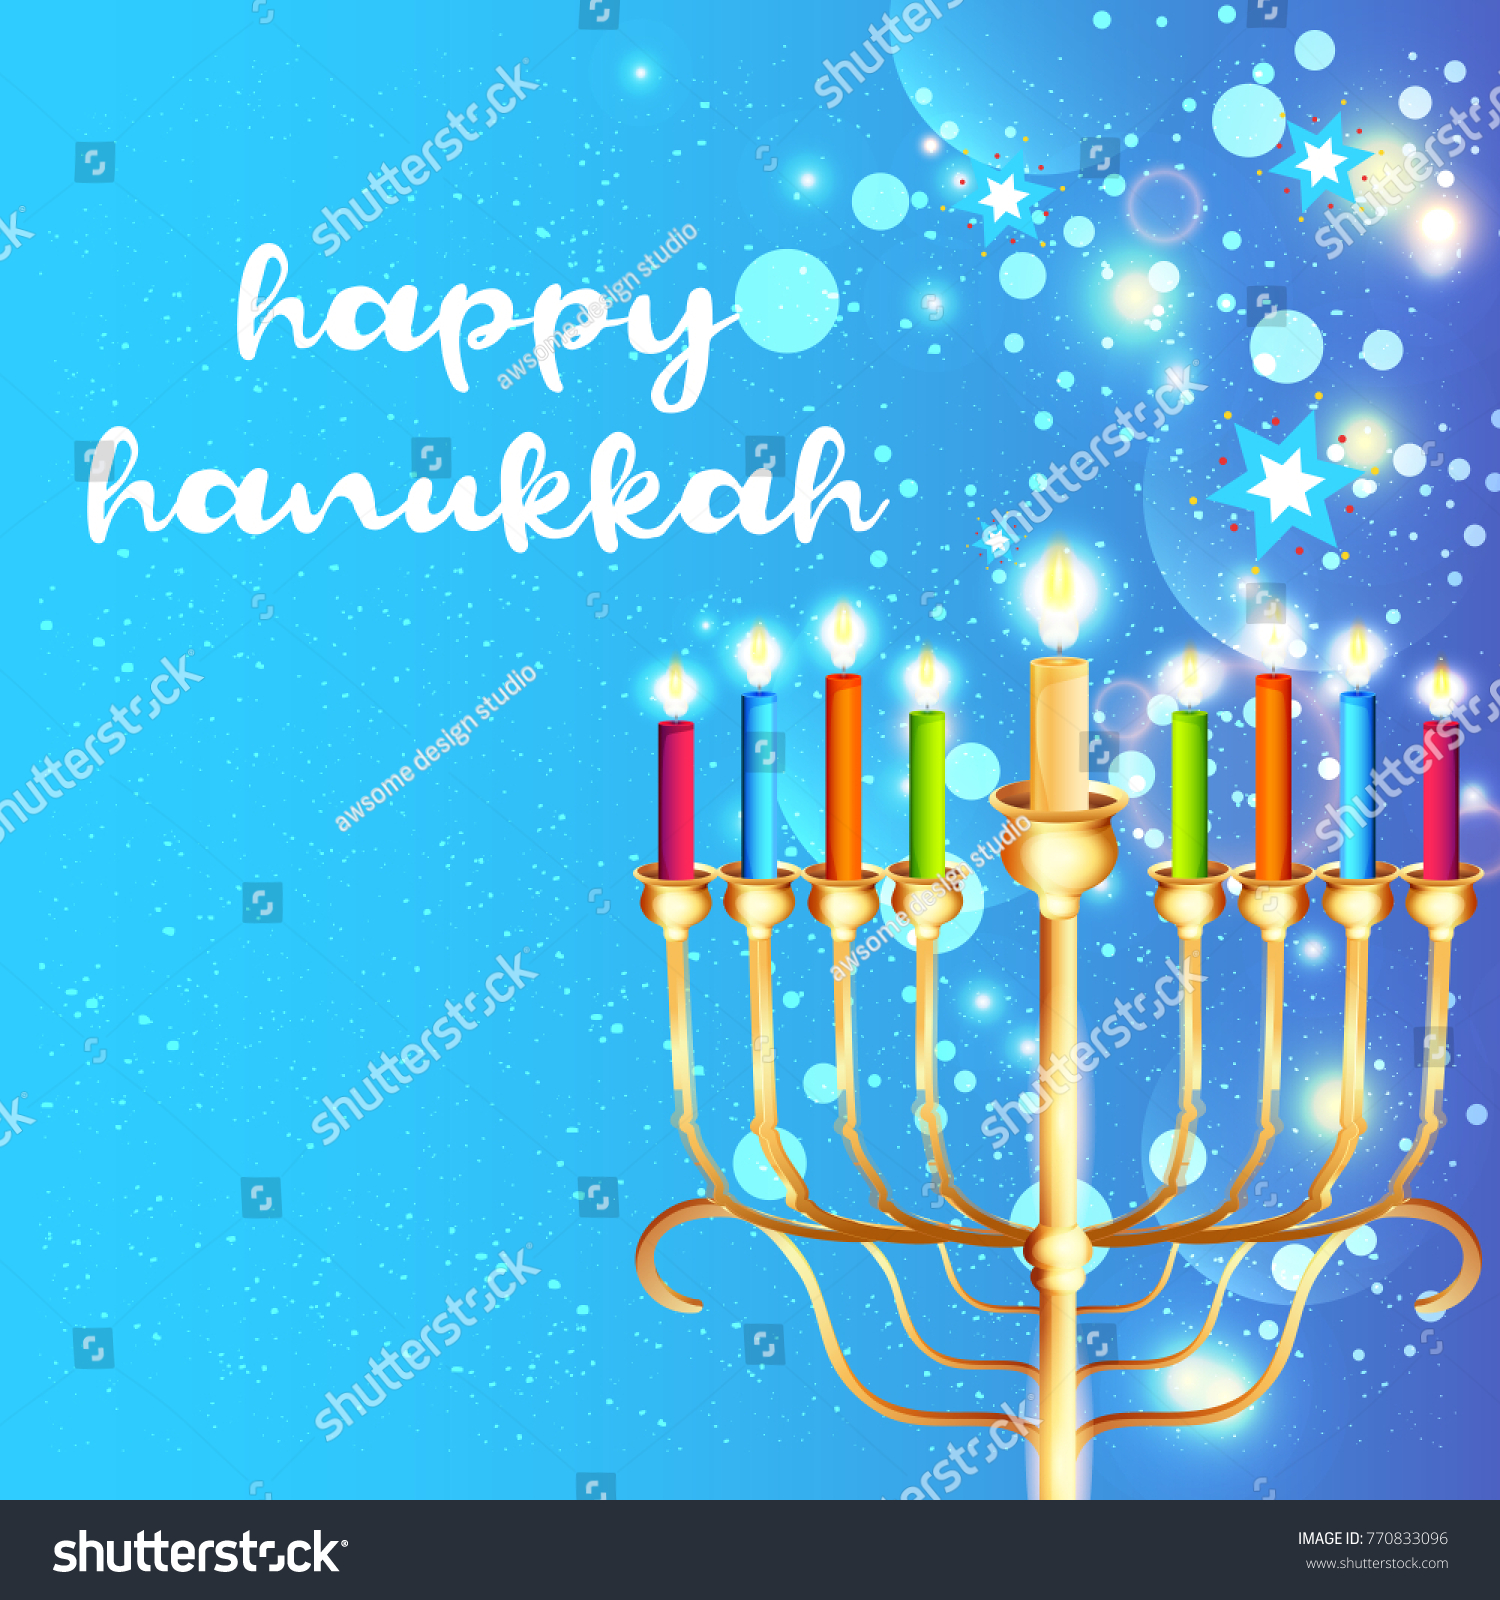 Happy Hanukkah Greeting Card Invitation Card Design Jewish Stock